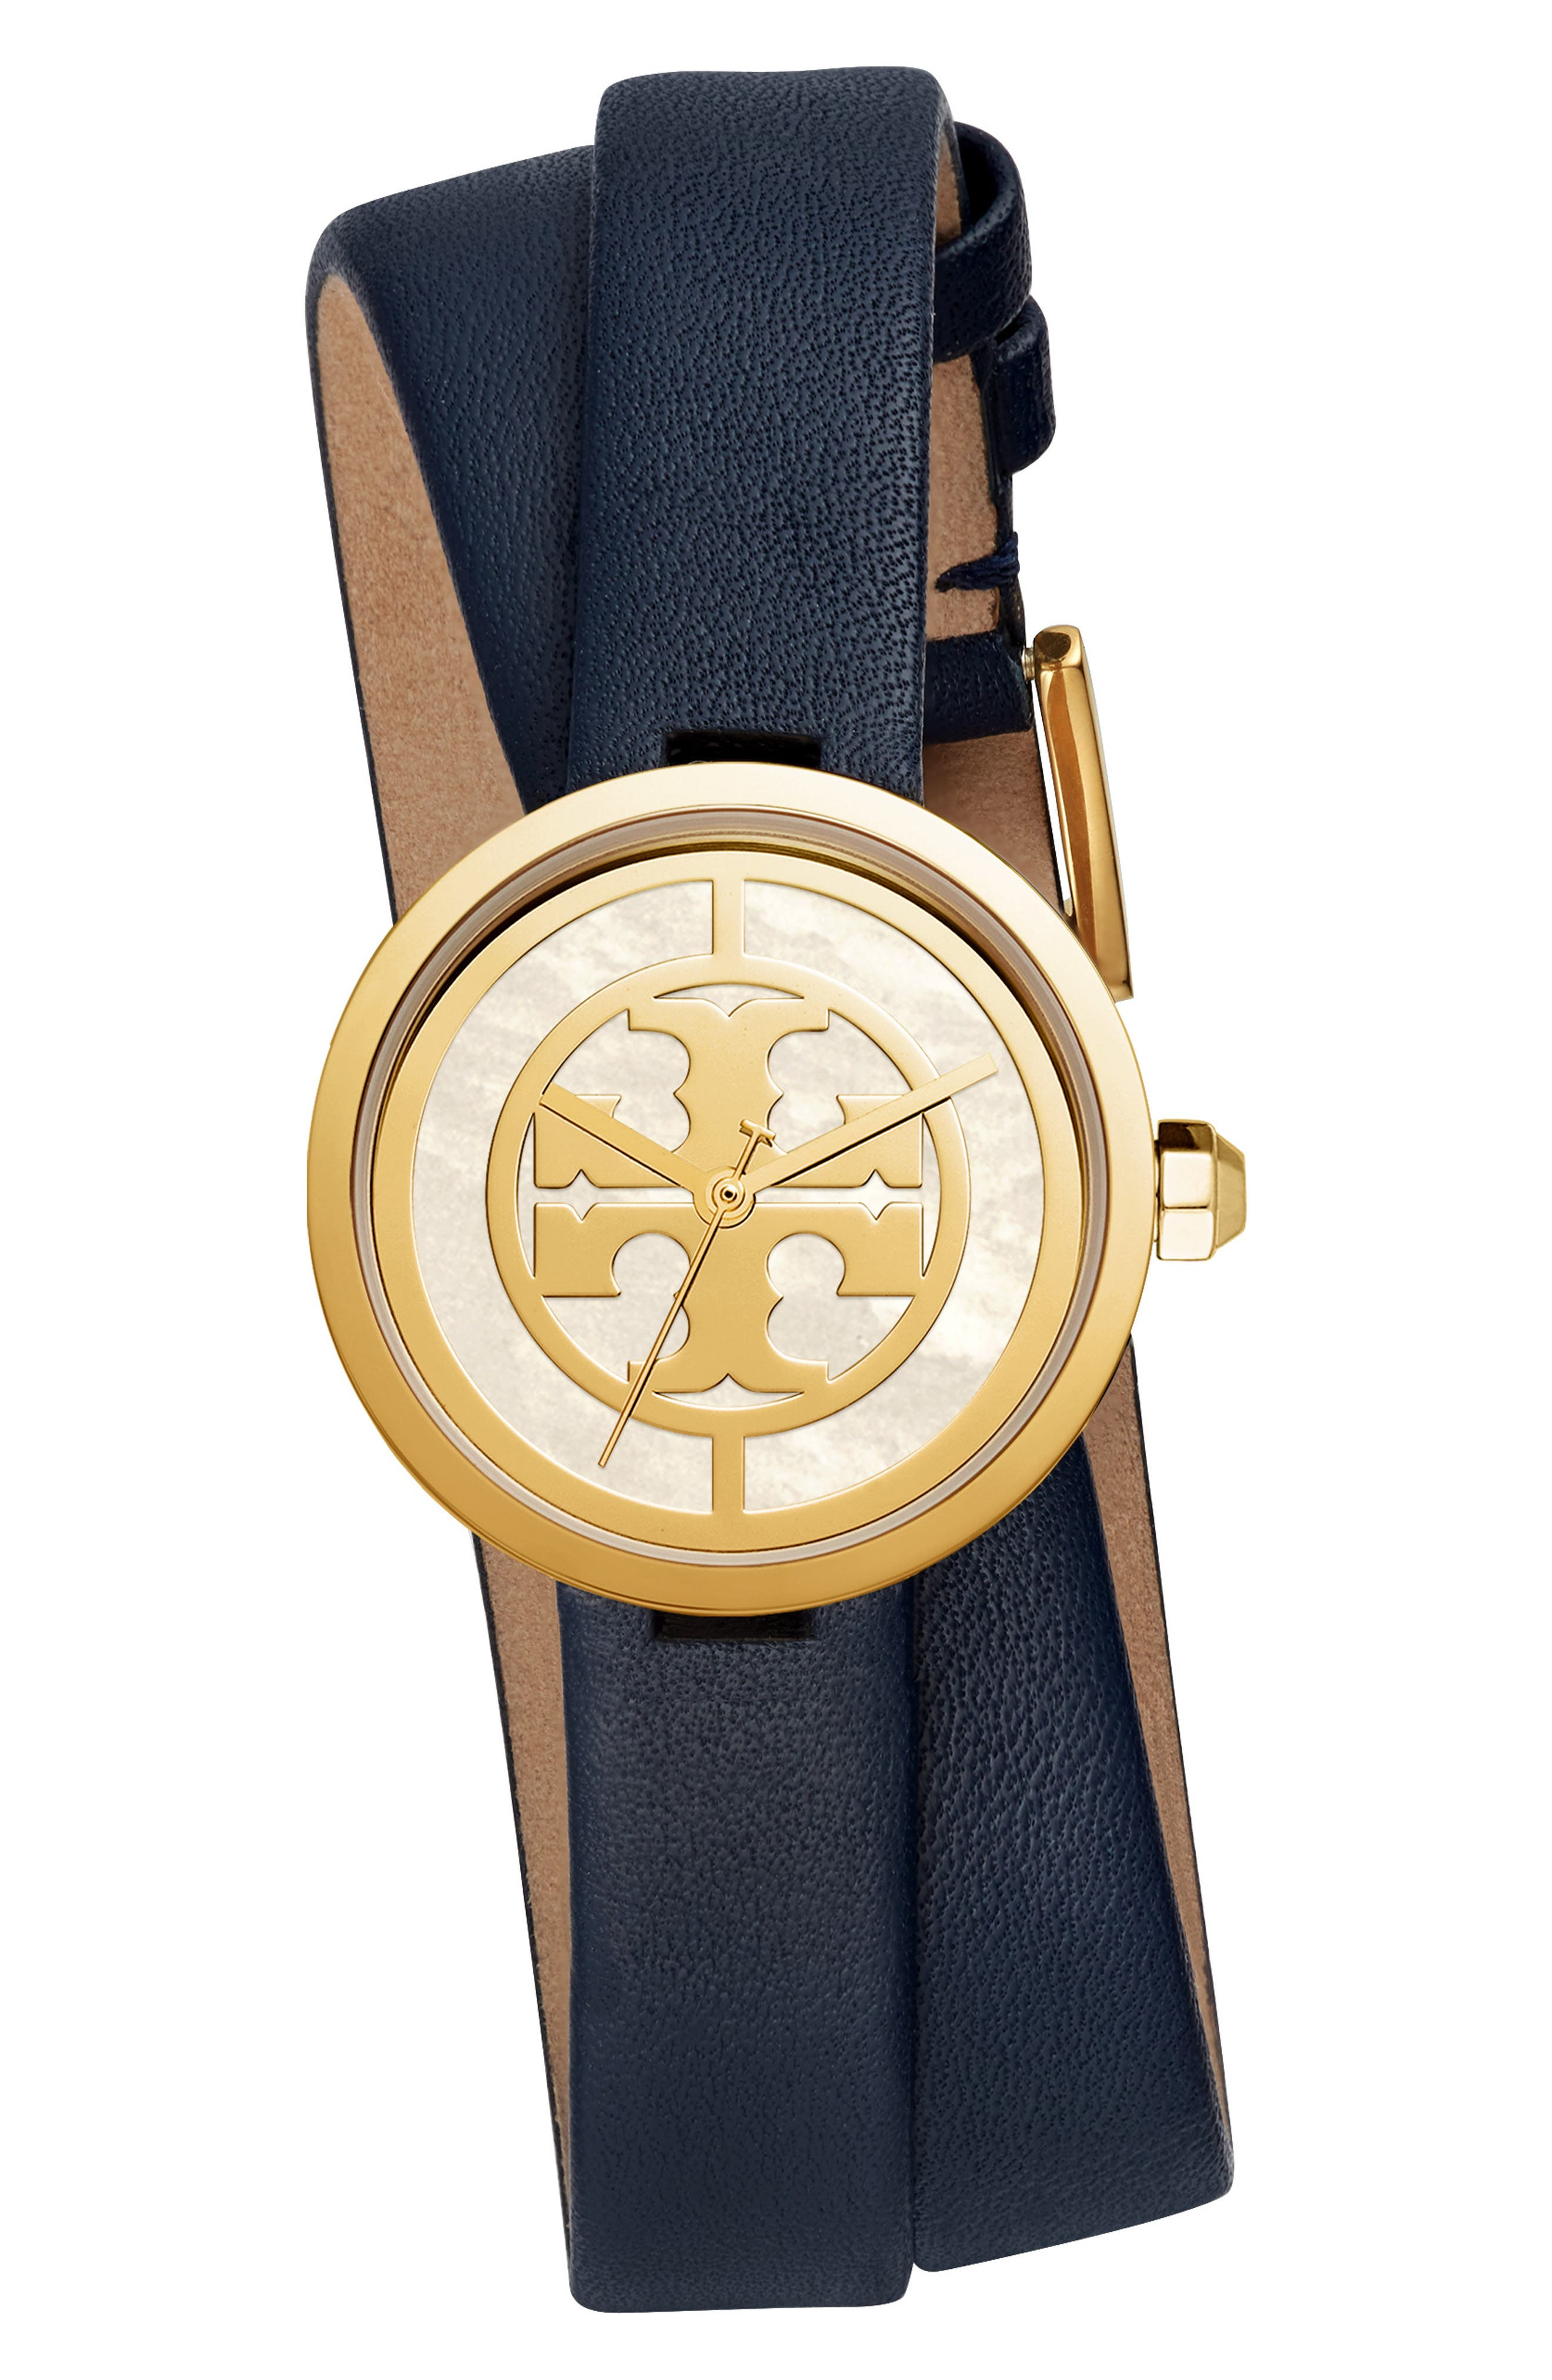 TORY BURCH, Reva Double Wrap Leather Strap Watch, 29mm, Main thumbnail 1, color, BLUE/ MOP/ GOLD